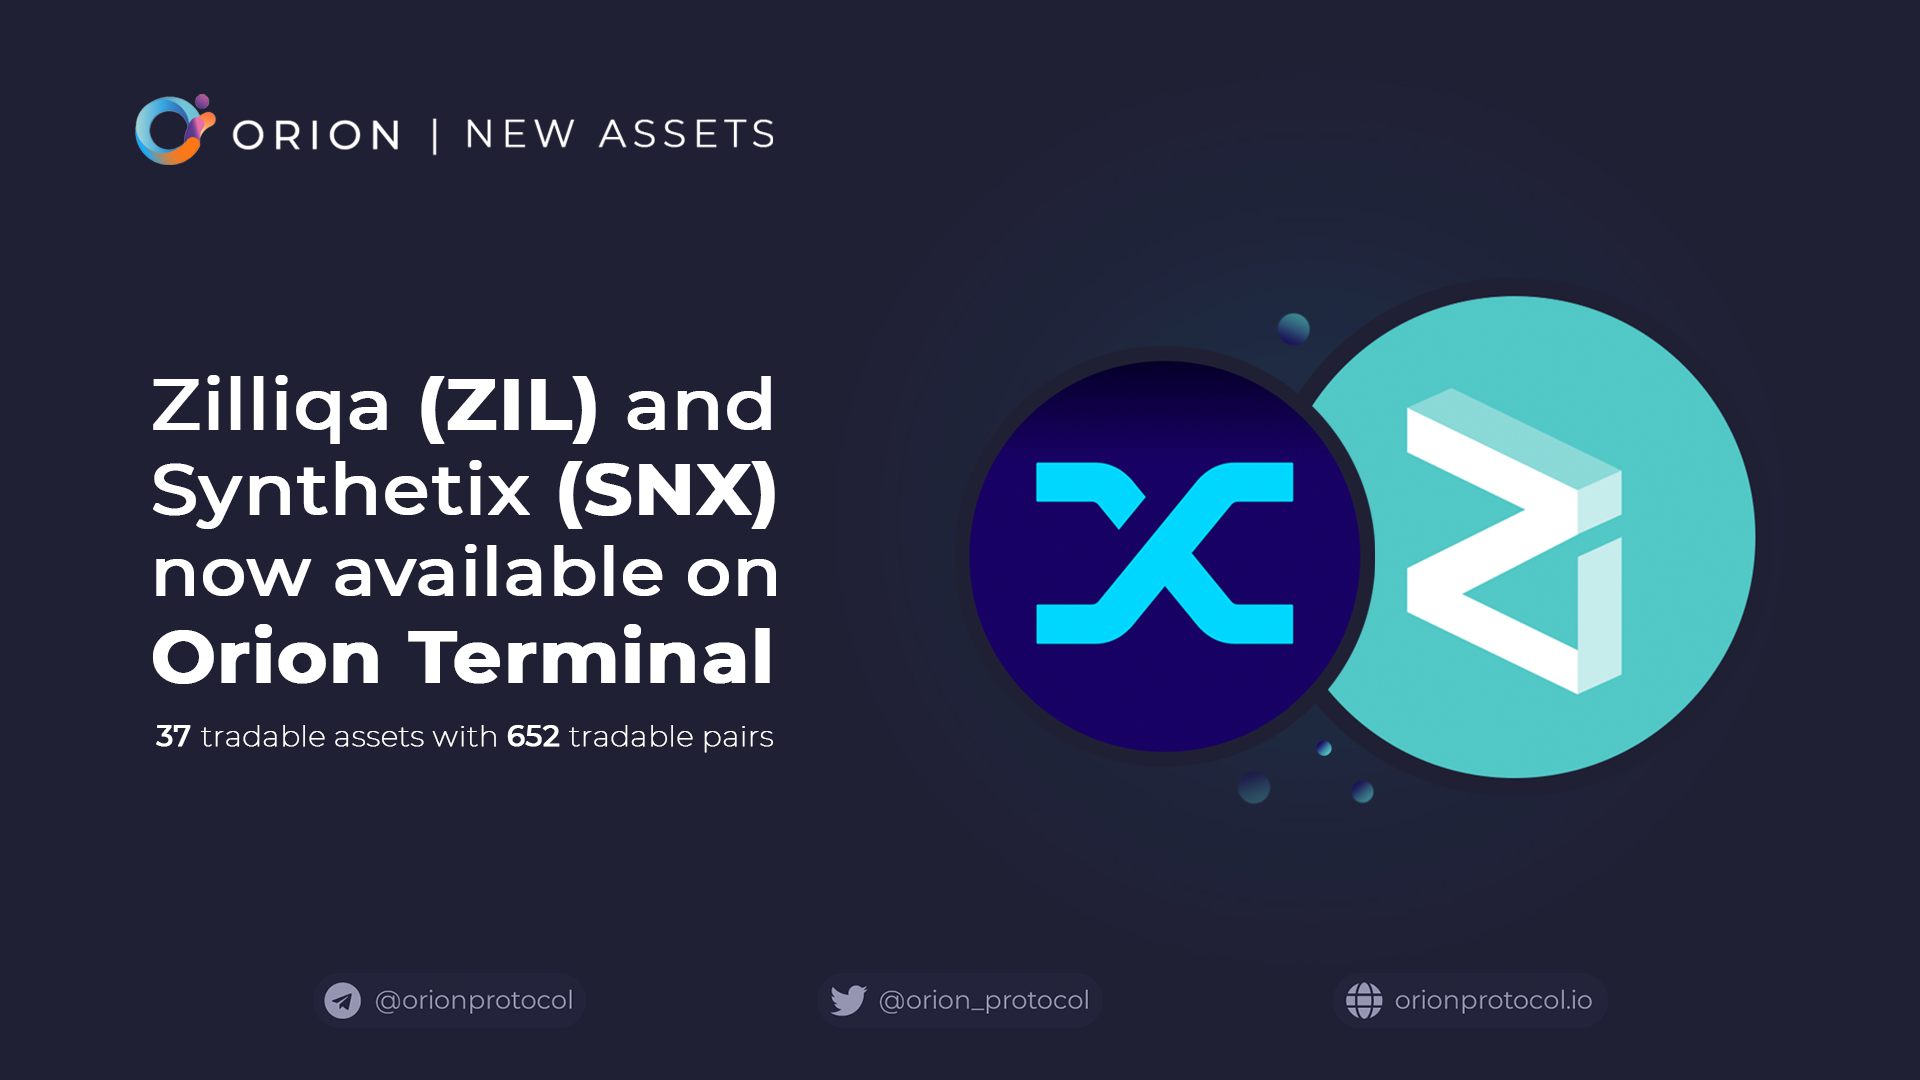 Zilliqa and Synthetix added to Orion Terminal